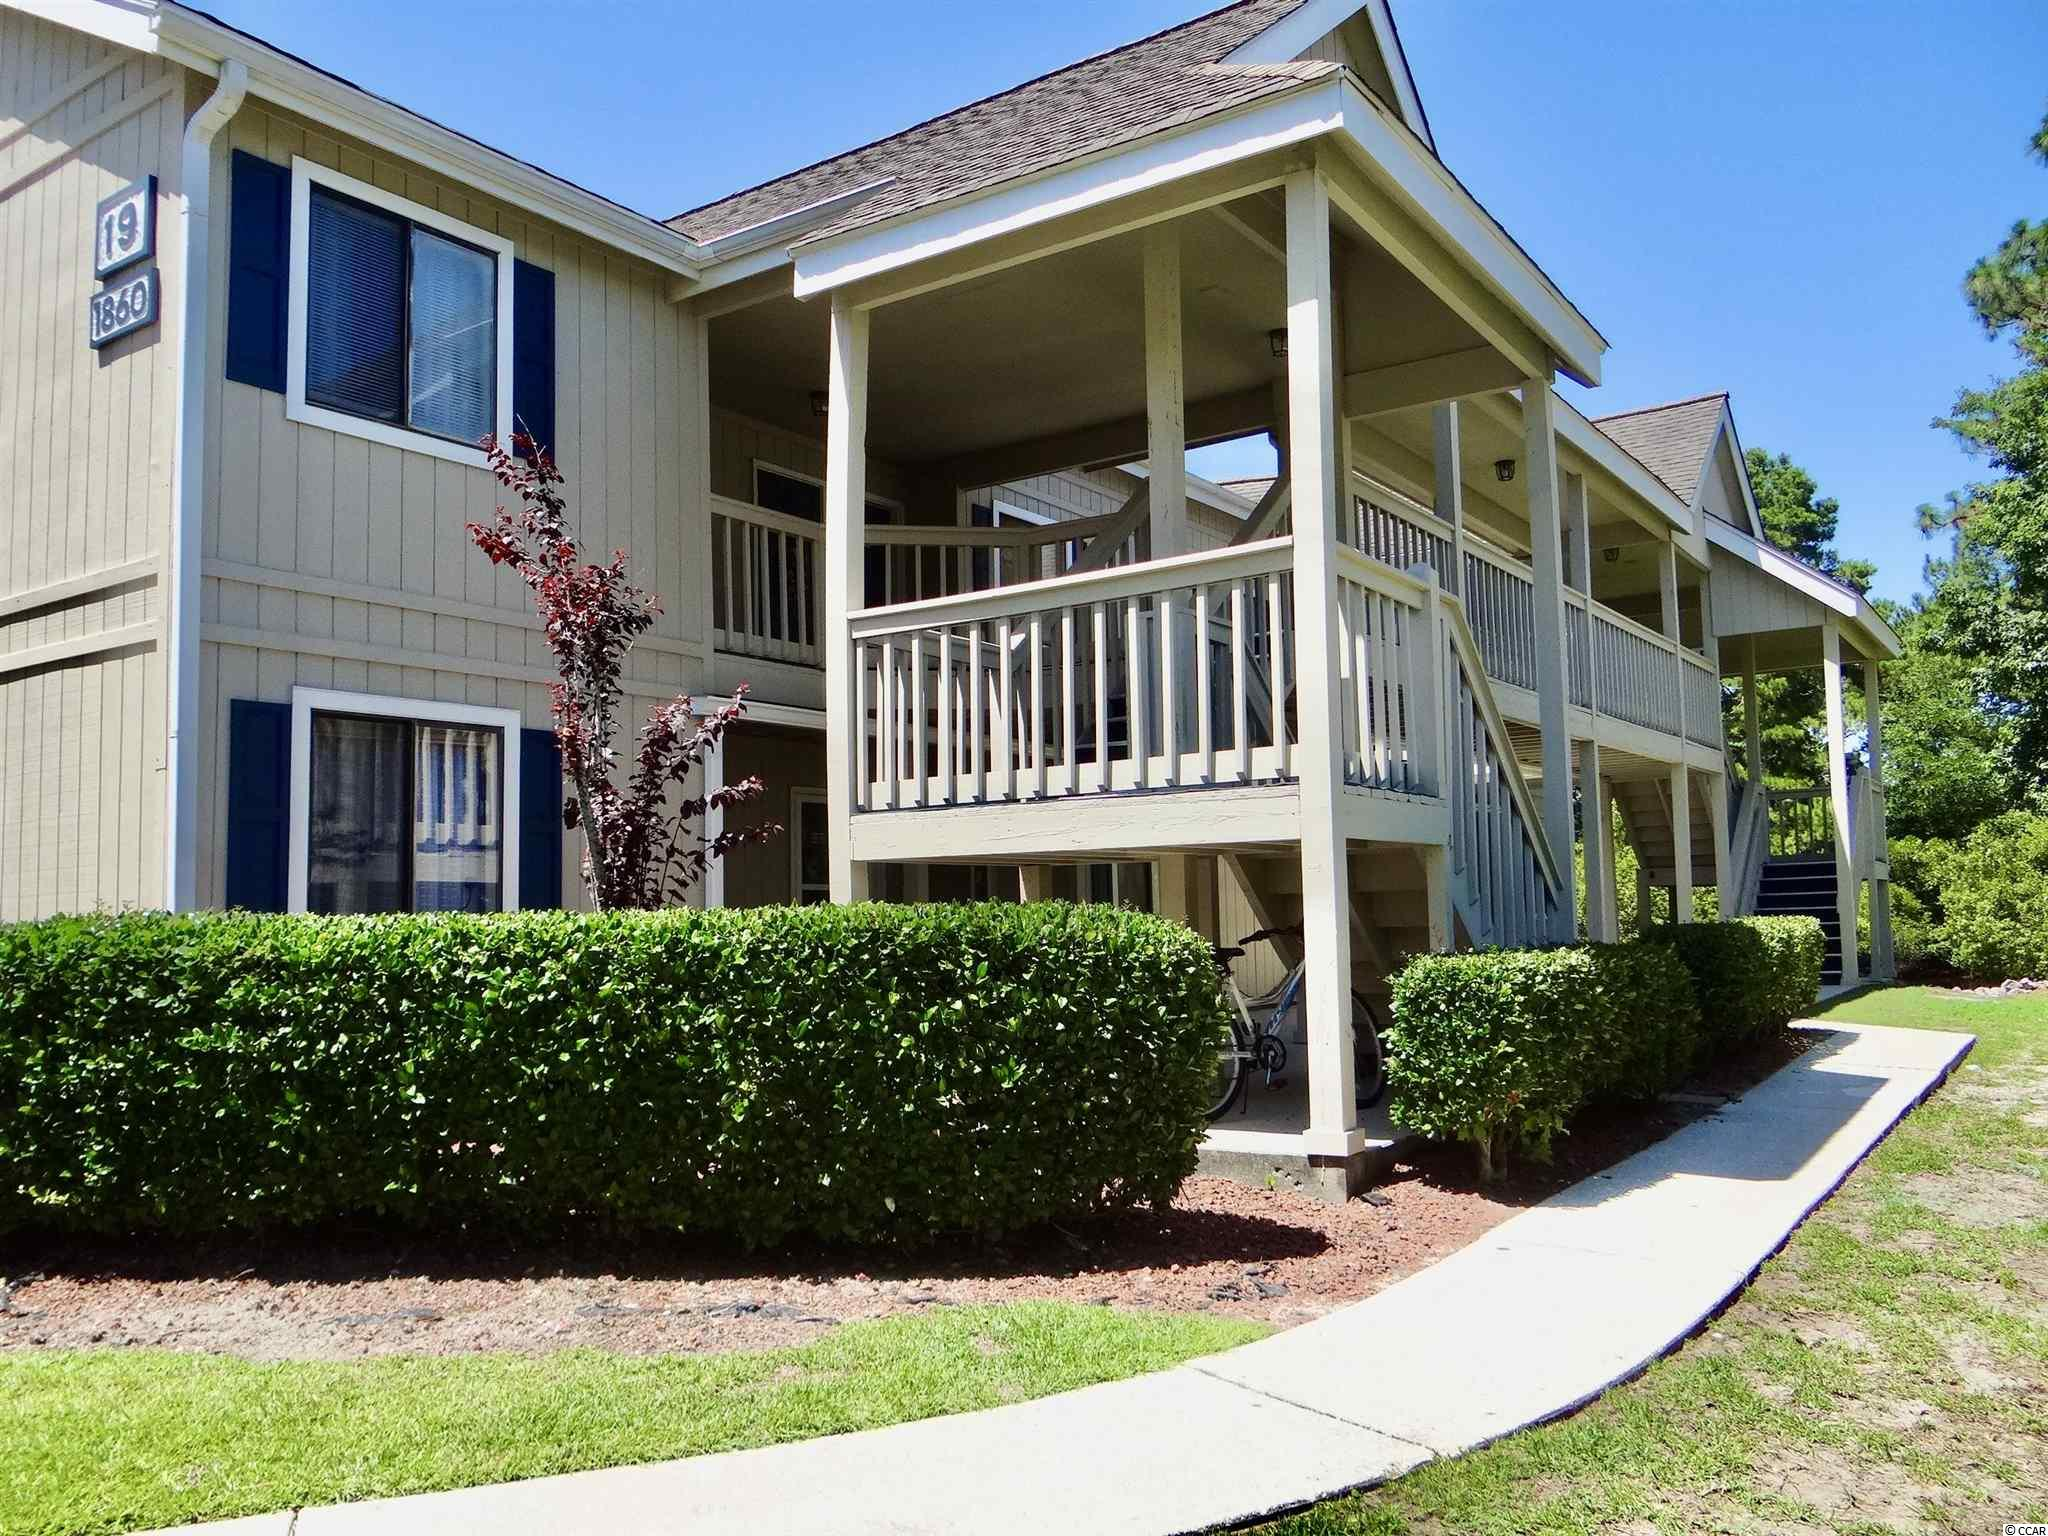 Wonderful, furnished 1 bedroon 1 and 1/2 bath condo in Golf Colony Resort of Deerfield Plantation in Sufside Beach, SC. Perfect for those weekend getaways to the beach. Quiet second floor condo overlooking the private pool and hot tub from a spacious balcony. Conveniently located approximately 1.75 miles from the Atlantic Ocean. Ideal for exploring all of the Grand Strand including nearby shopping and activities. Vacation rental is allowed with a minimum three day stay. Have your real estate agent show you this great condo today.